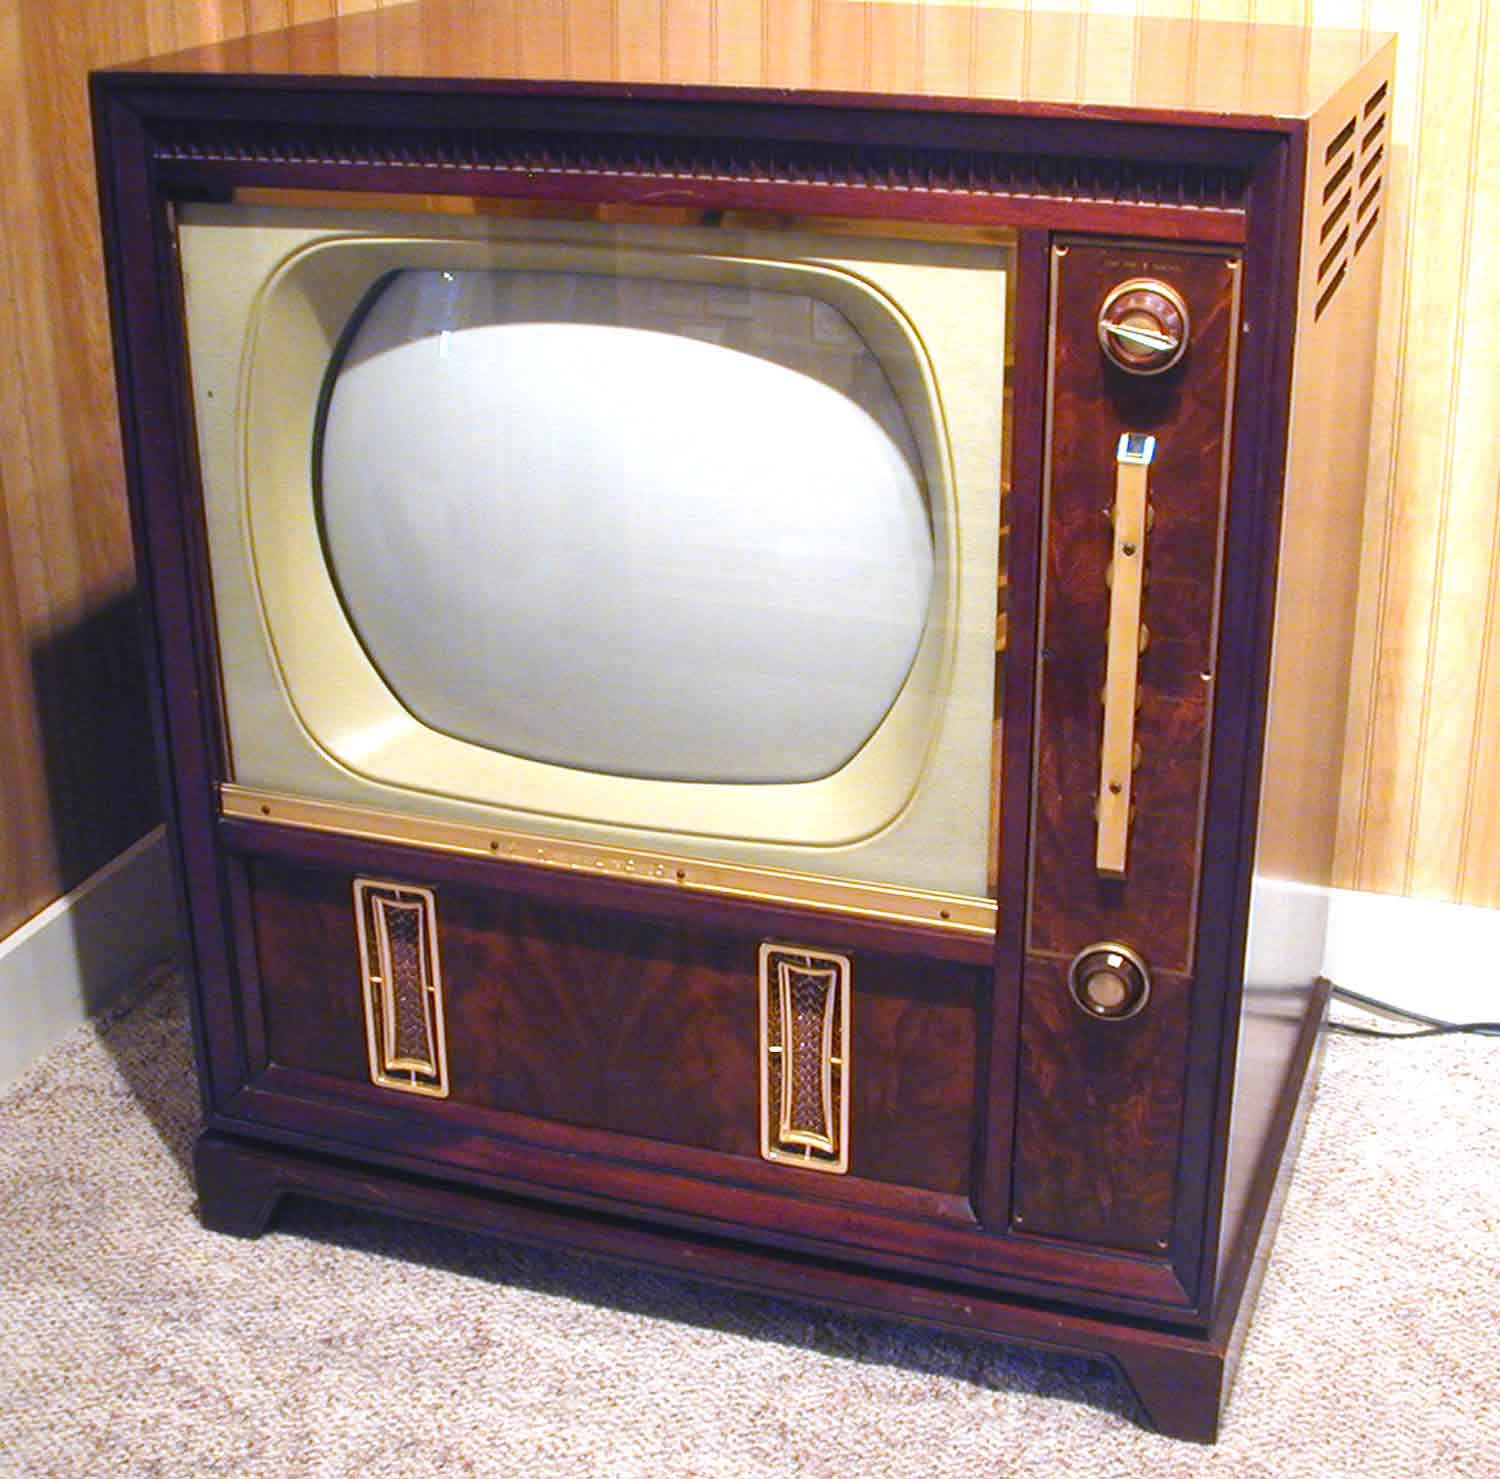 A Close Up On An Early Television